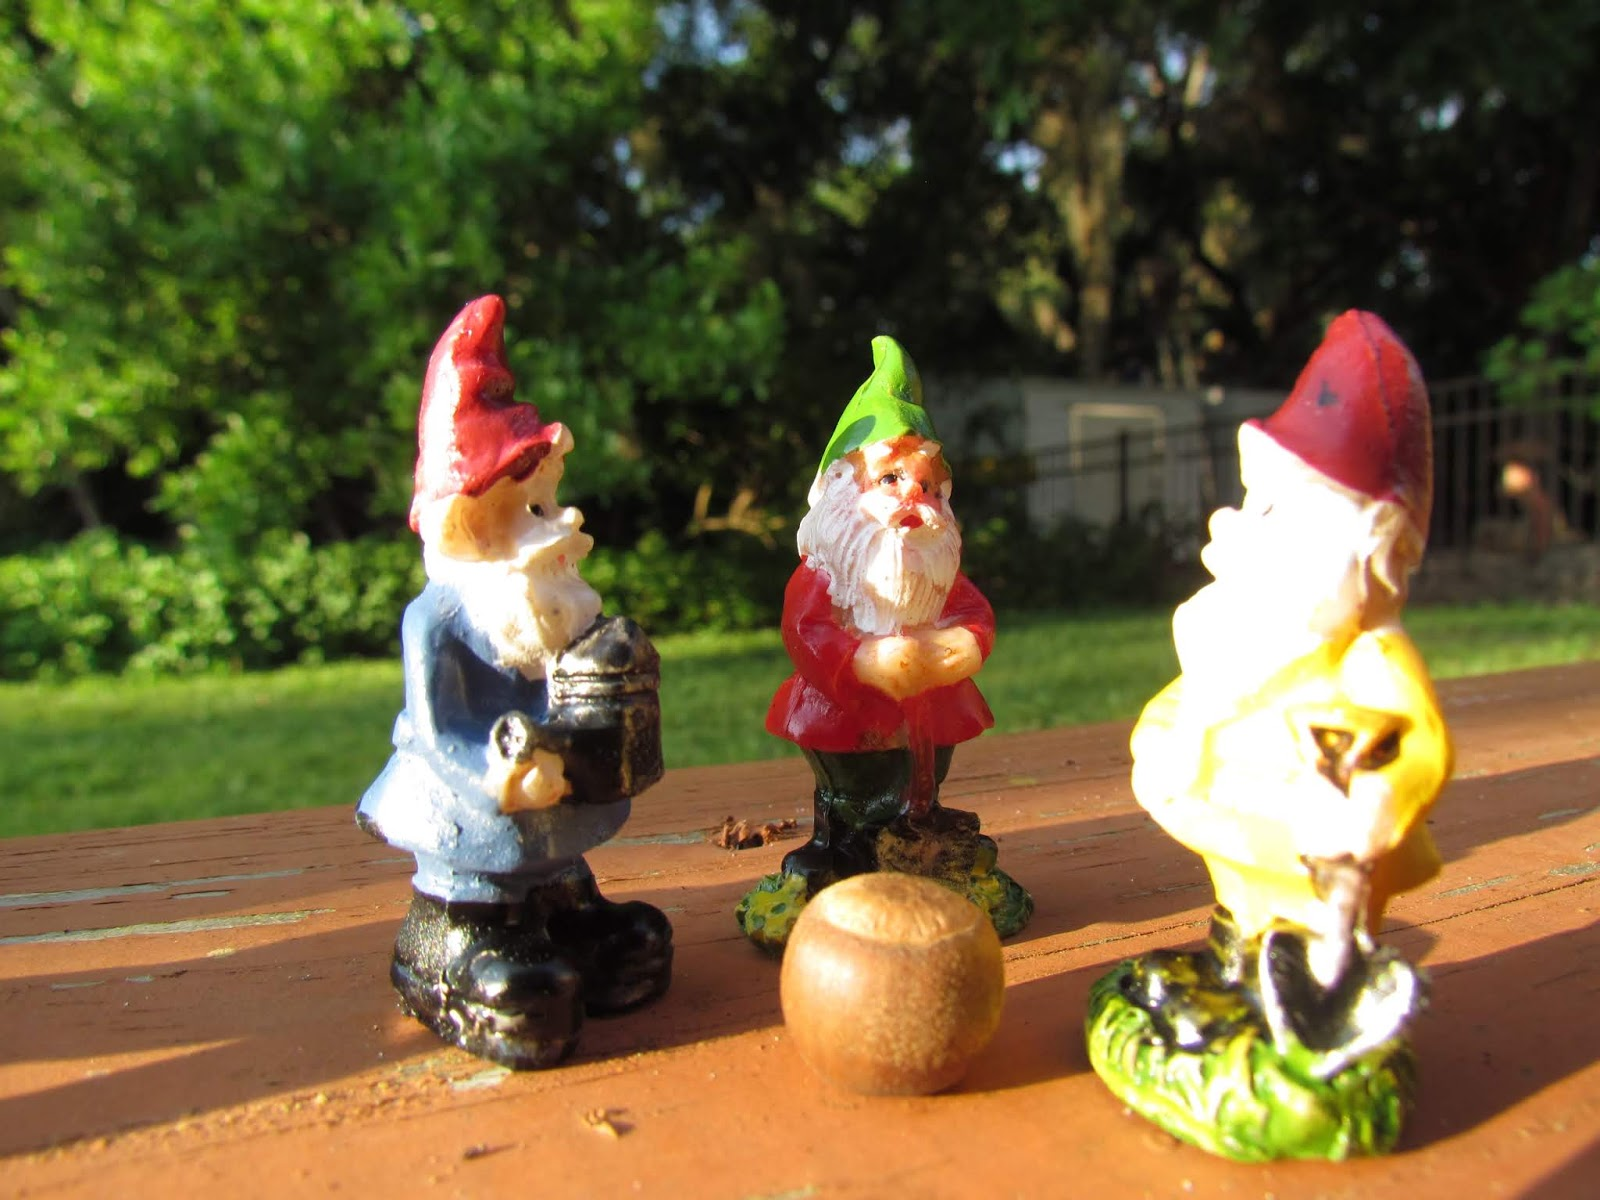 Natural Acorn on Wooden Porch With a Group of Gnome Figurines Having a Woodland Gathering and a Forest Feast